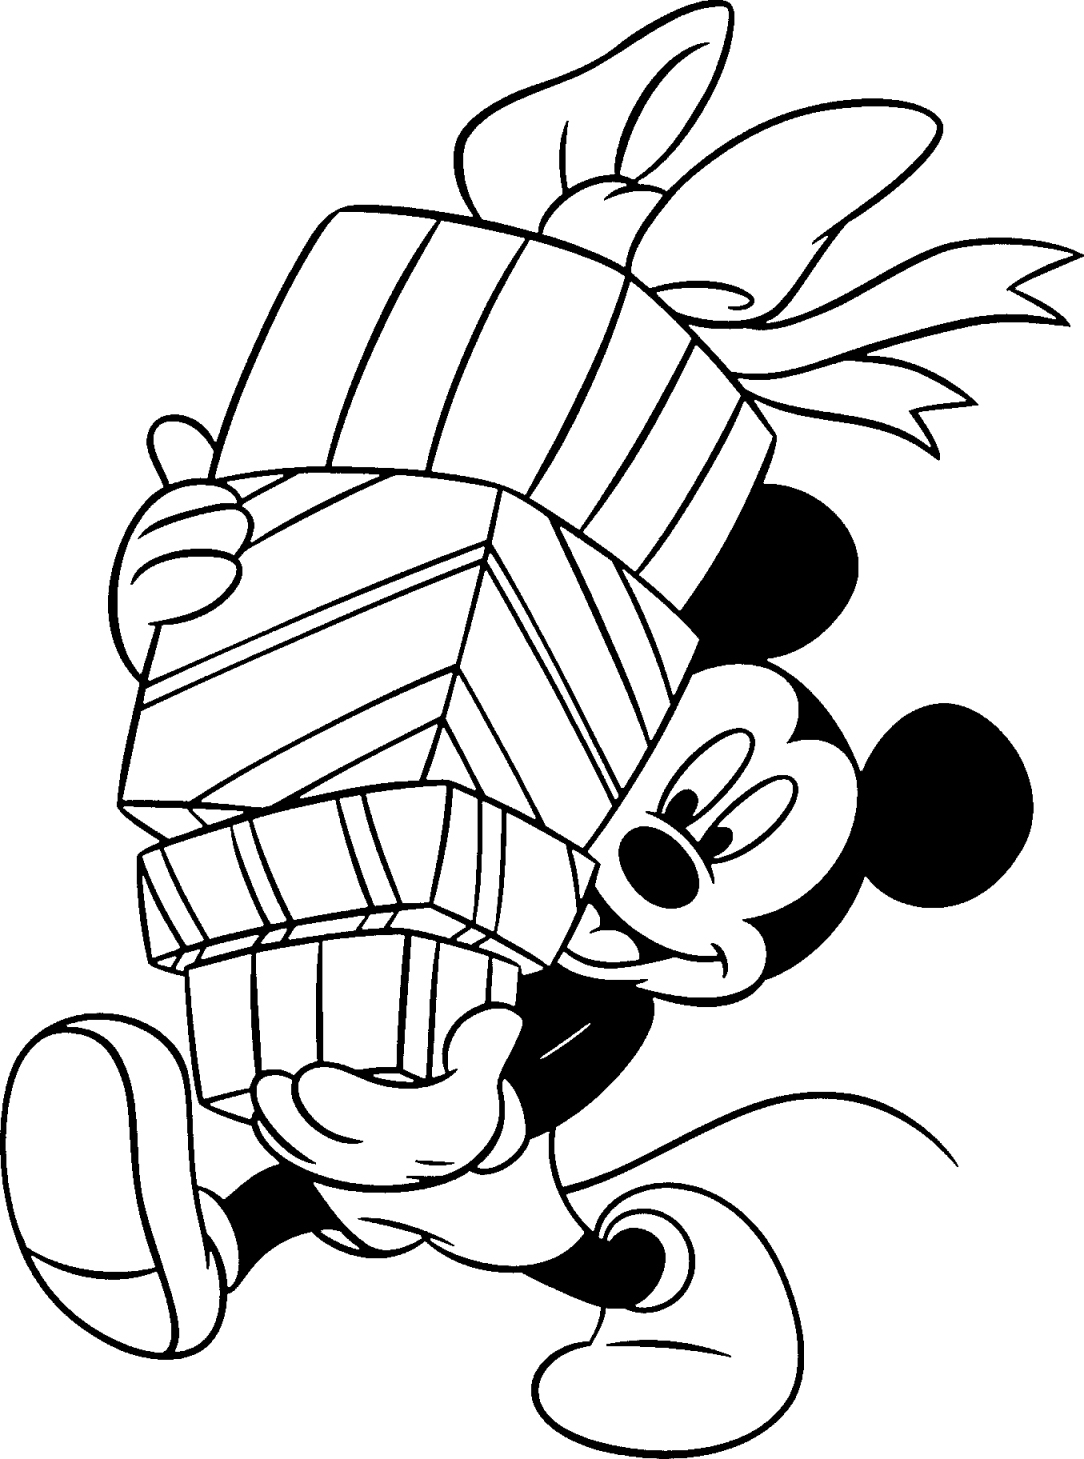 disney fall coloring pages Archives - Coloring Website